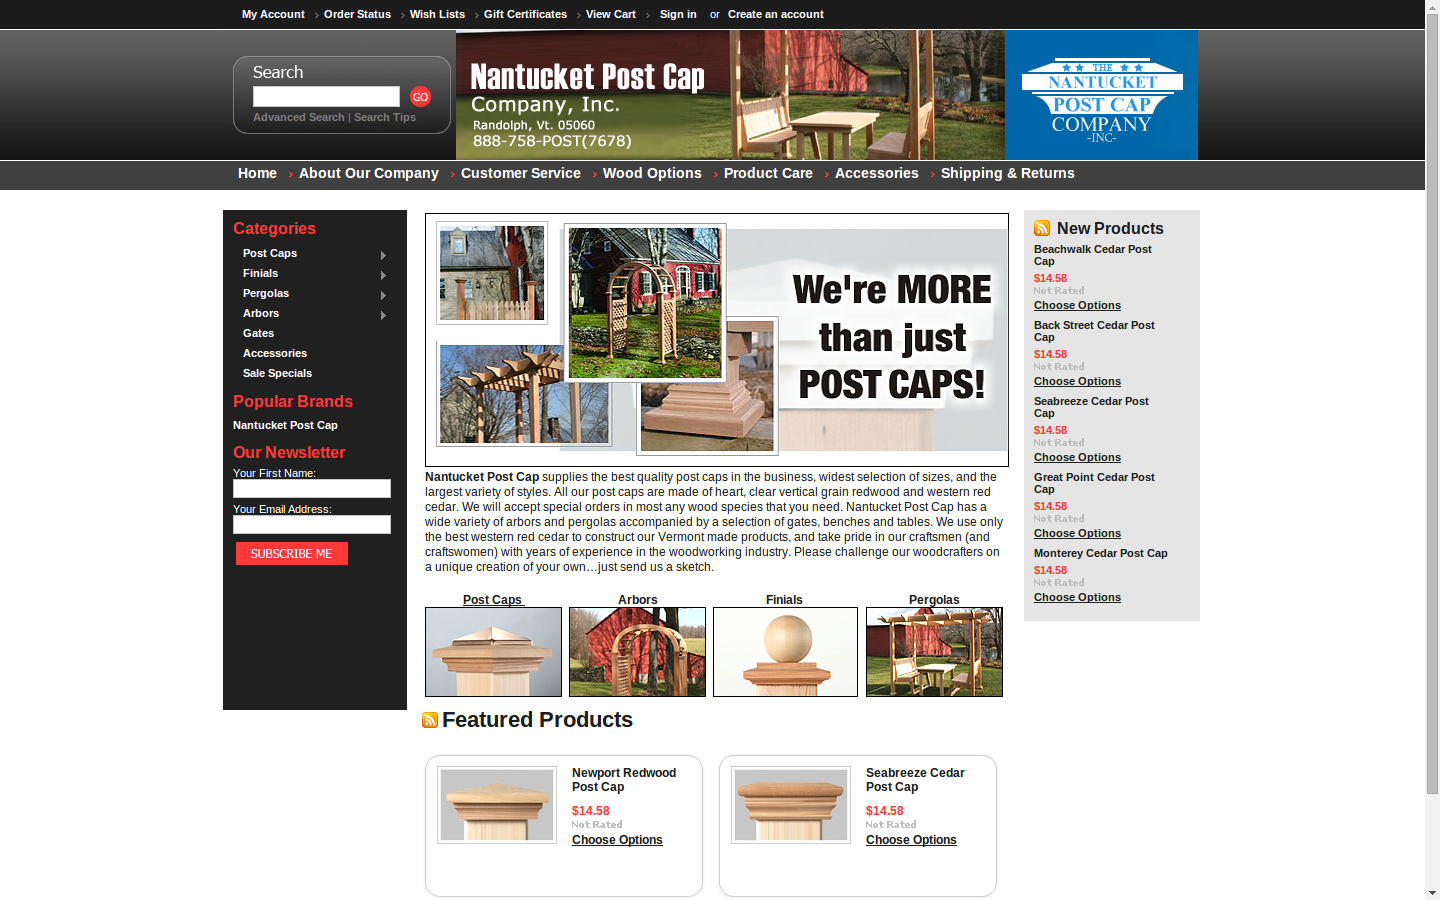 Nantucket Post Cap Supplies The Best Quality Caps In Business Widest Selection Of Sizes And Largest Variety Styles